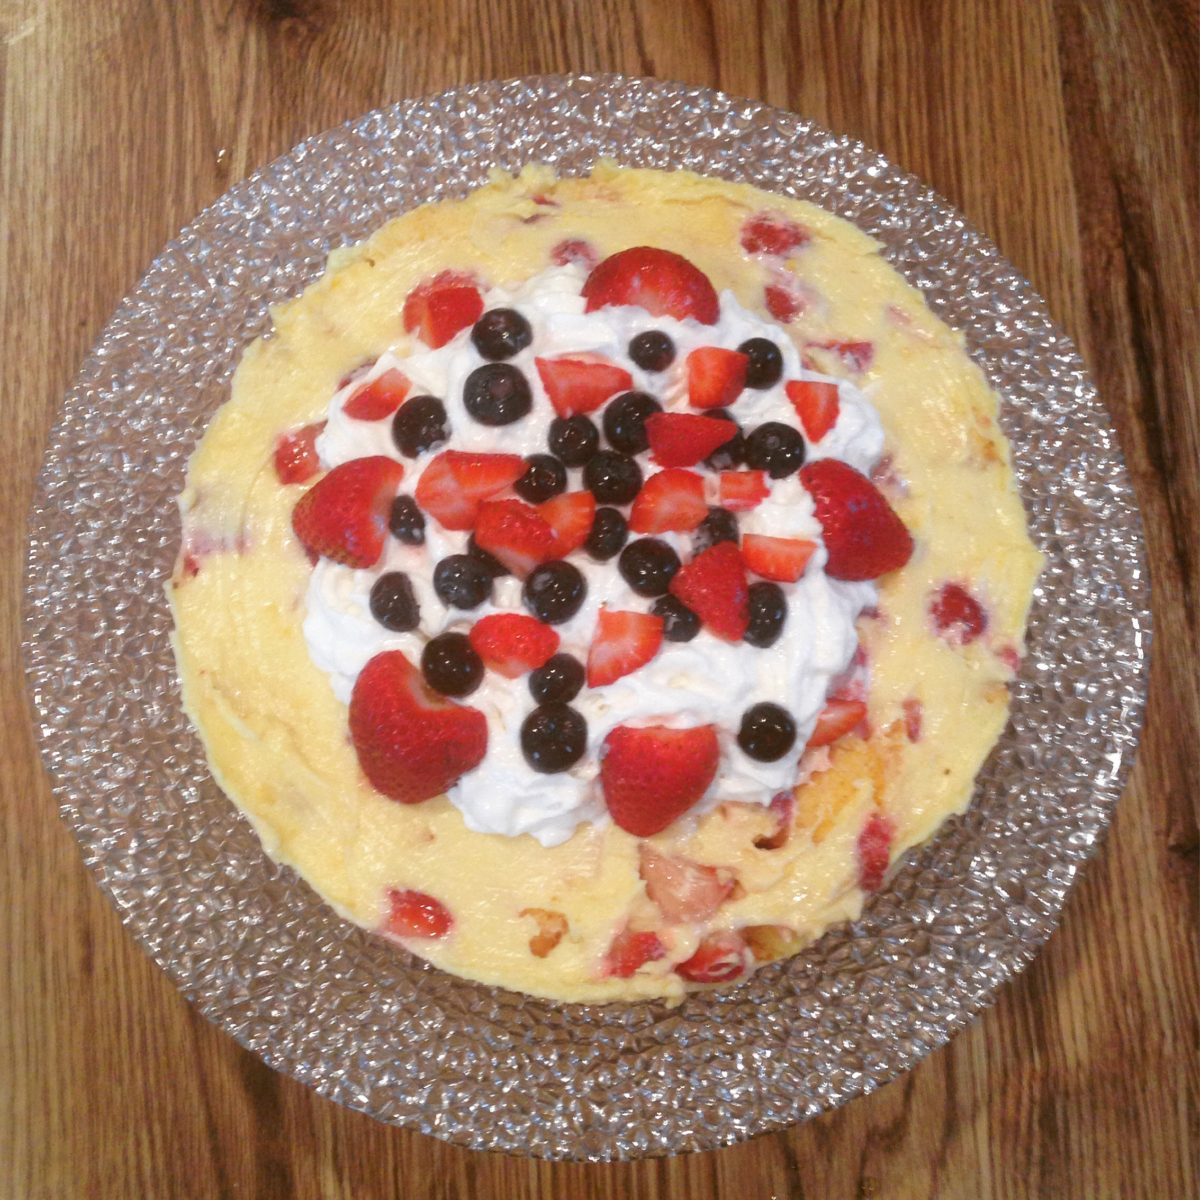 Fourth Filled Trifle